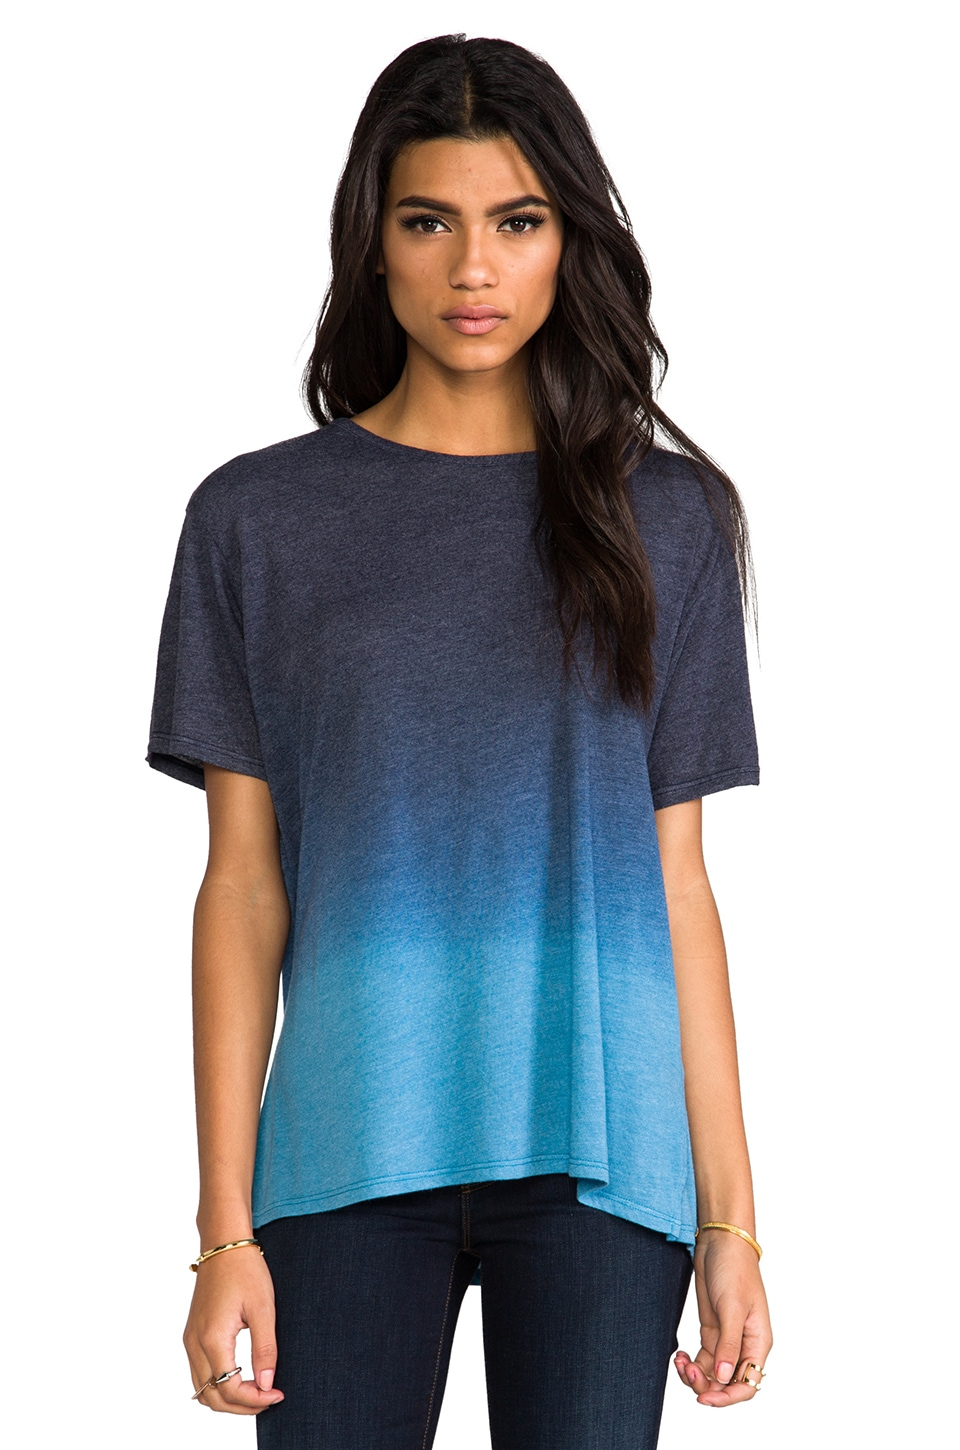 Saint Grace Carson Oversized Tee in Liberty & Kodiak Ombre